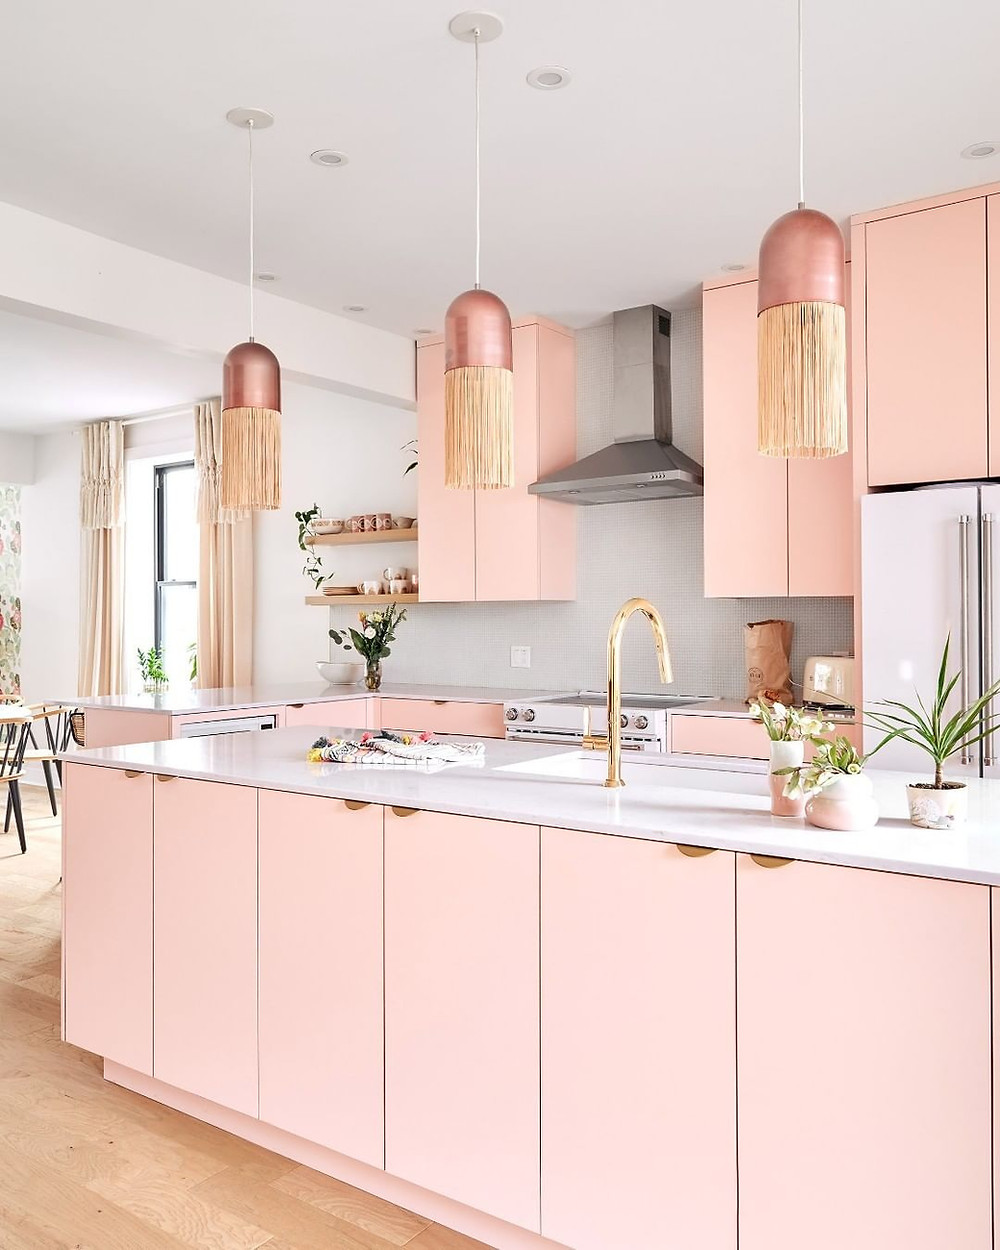 Glamorous pink kitchen with unique hanging lights and golden sink